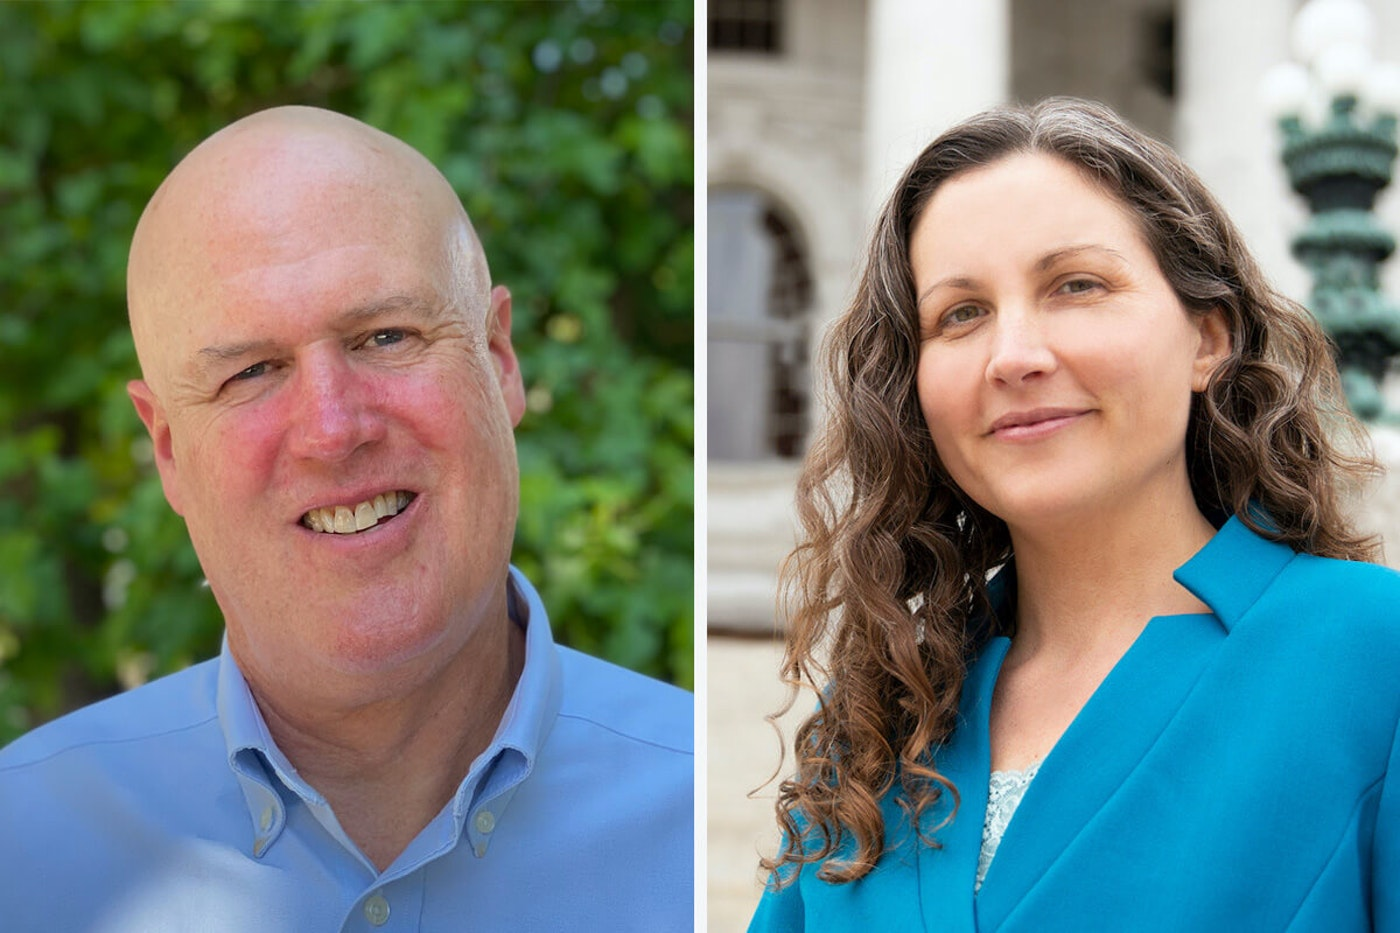 The UNN Candidate Interview: Dewey Bredeson and Heather Driscoll of Assembly District 76